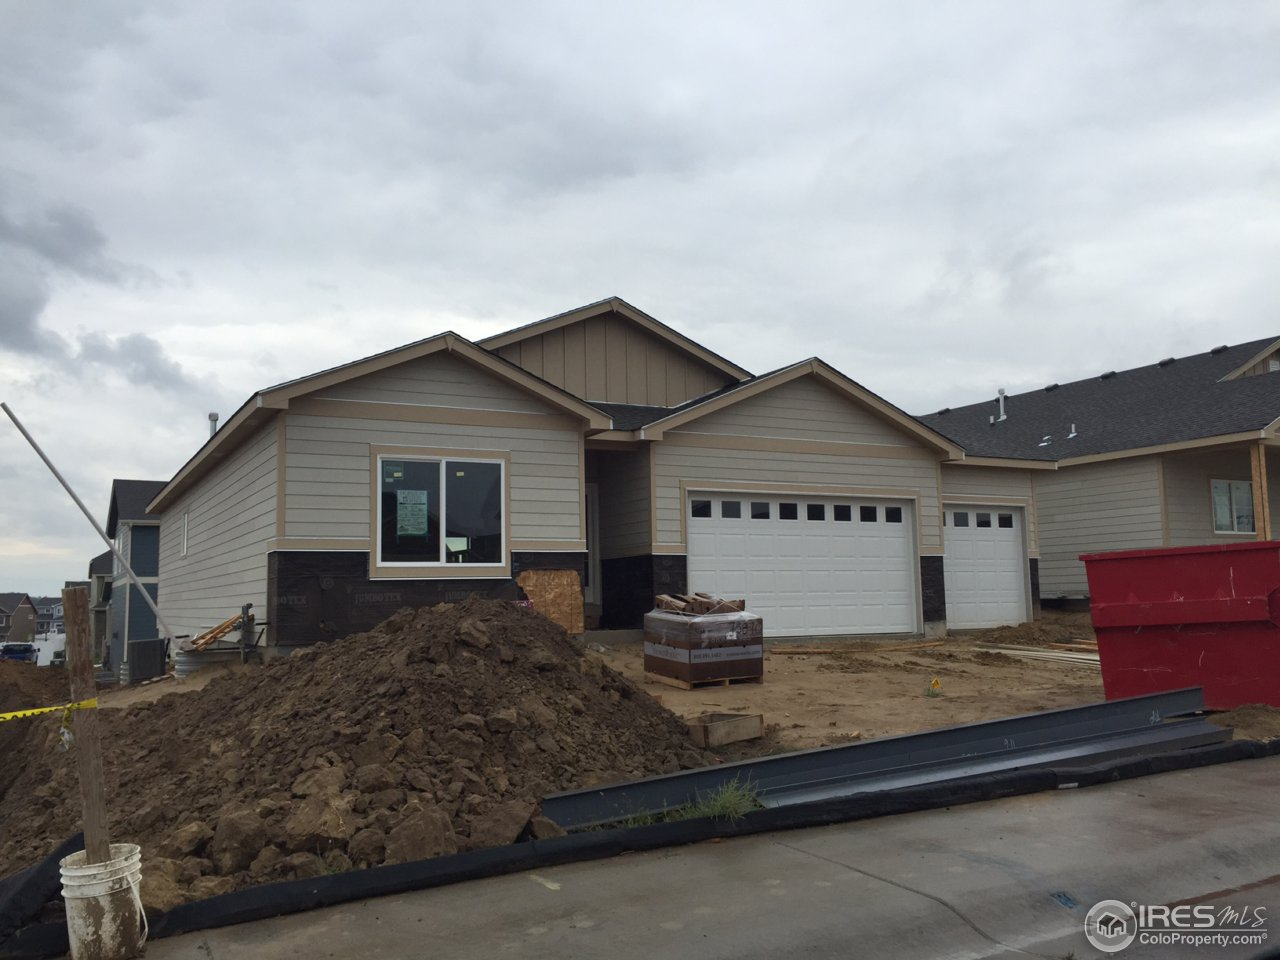 2246 75th Ave, Greeley, CO 80634